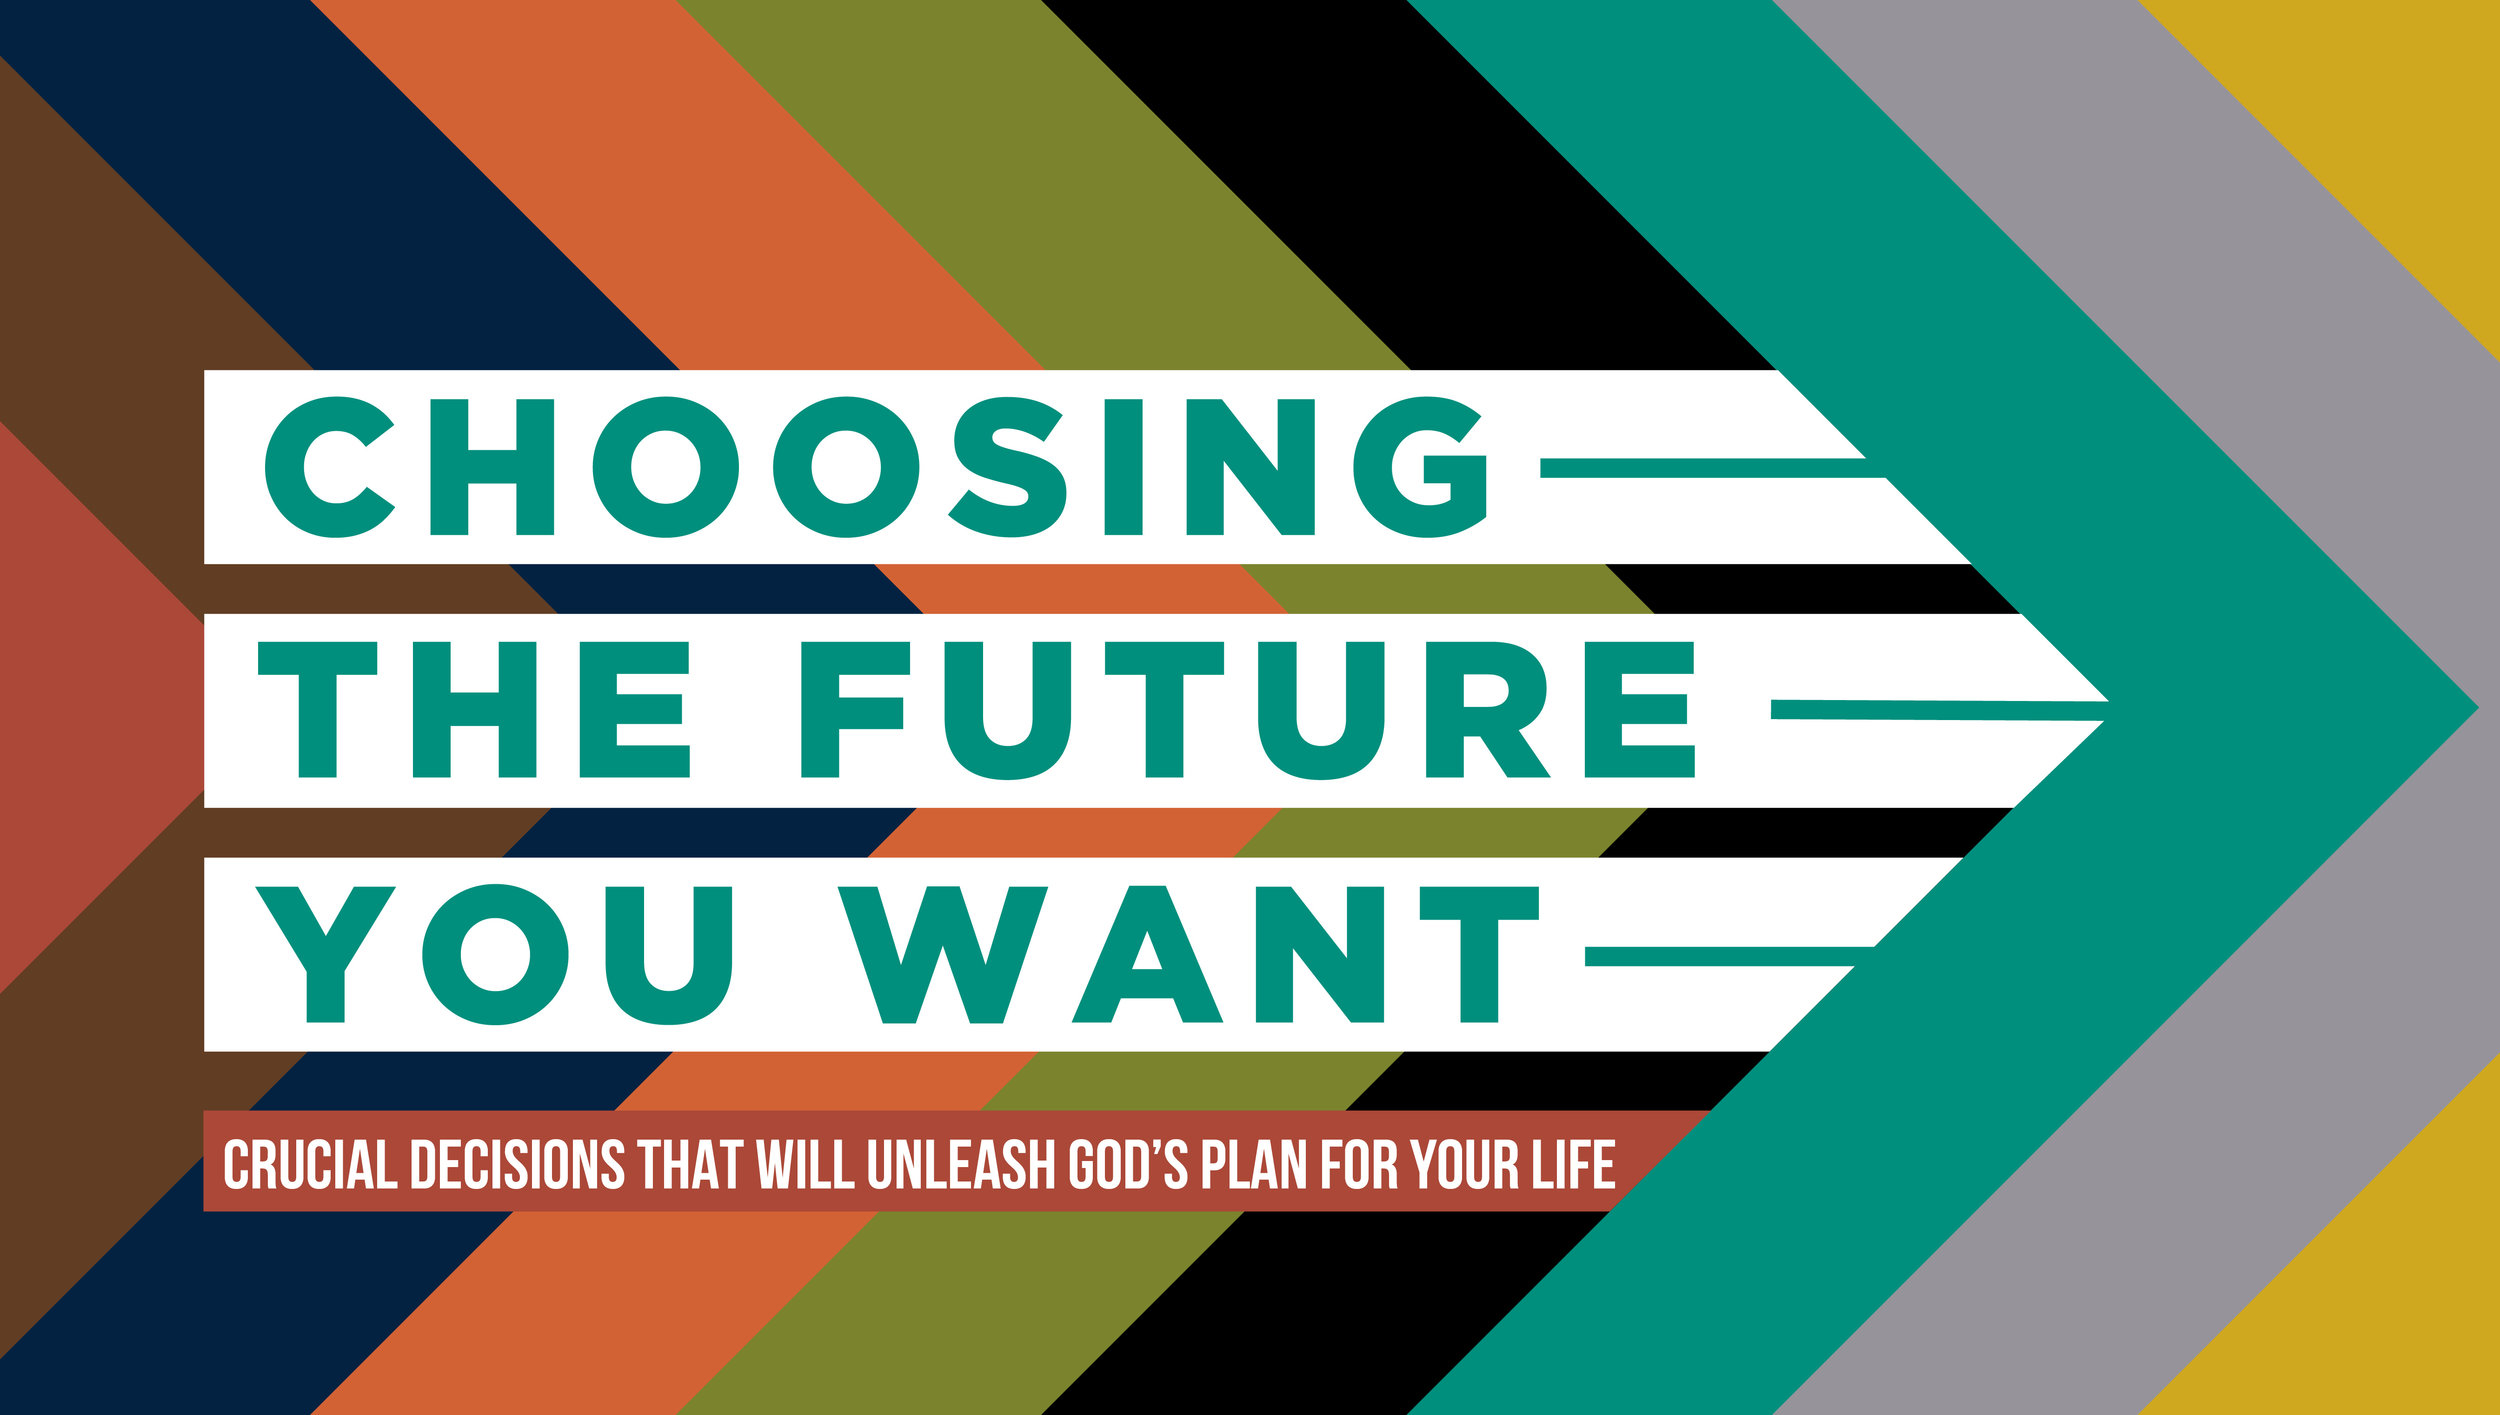 Choosing The Future You Want_Slide 09-09-18-01.jpg